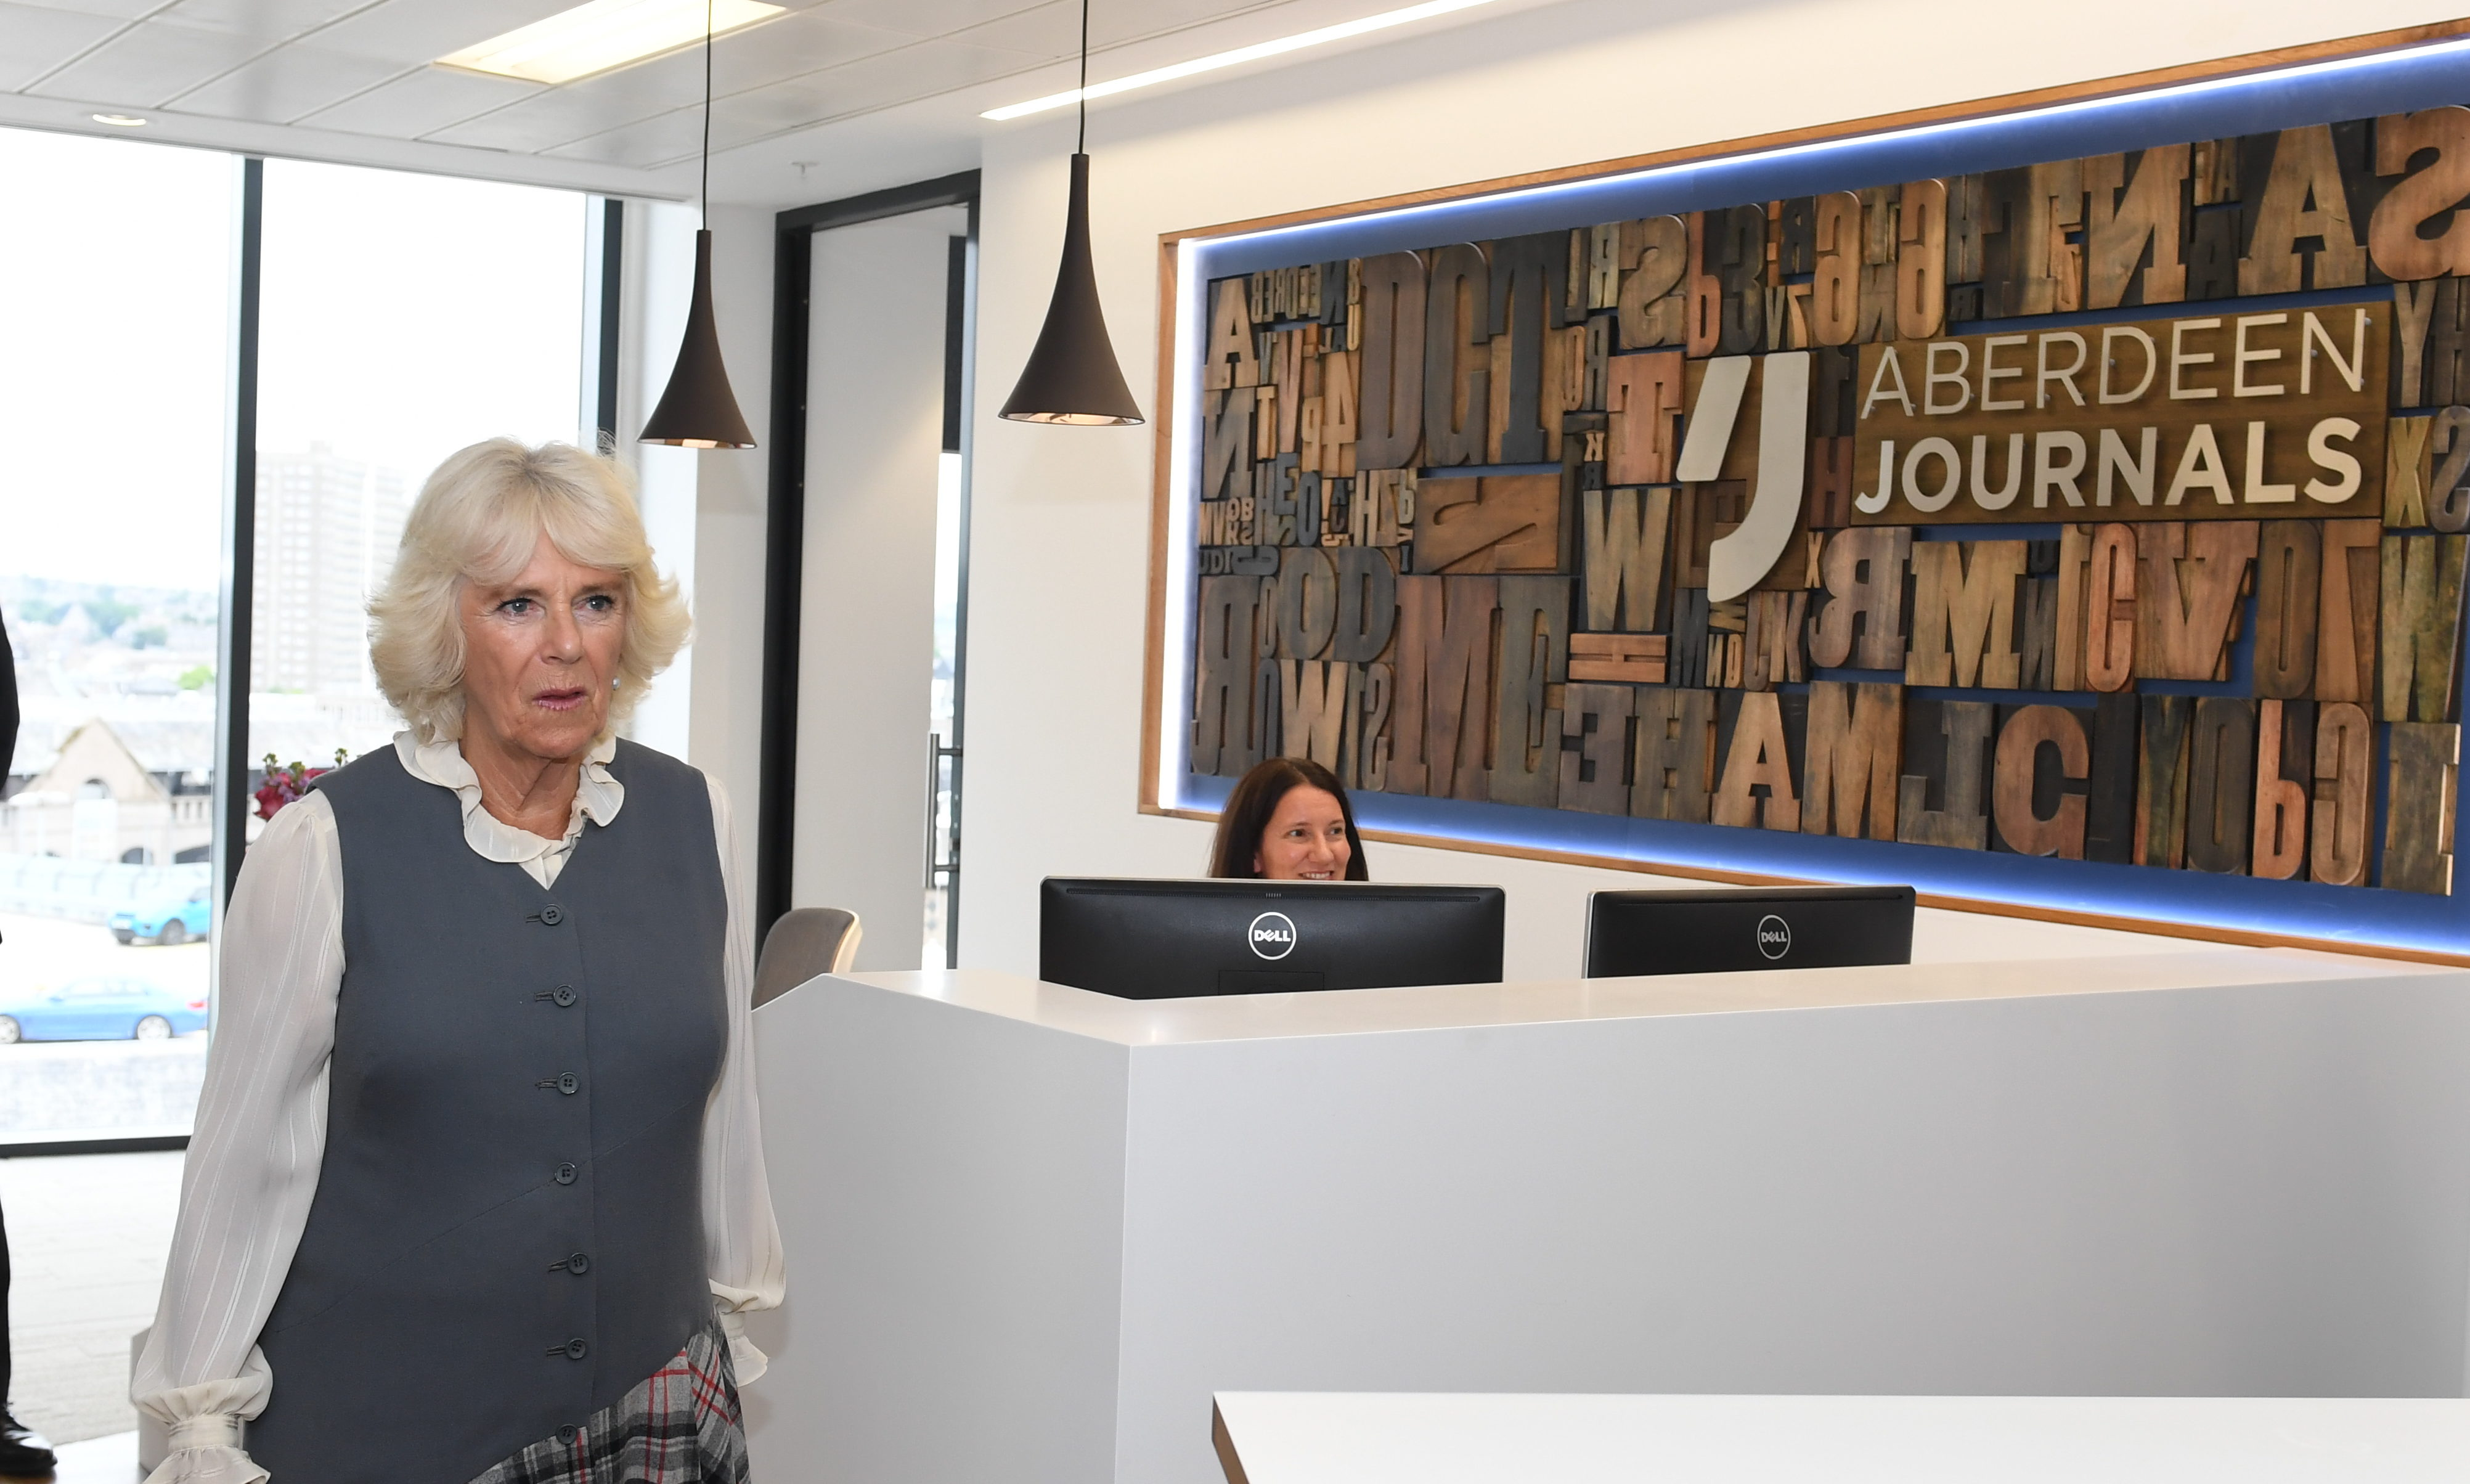 Camilla during her visit to the Aberdeen Journals office